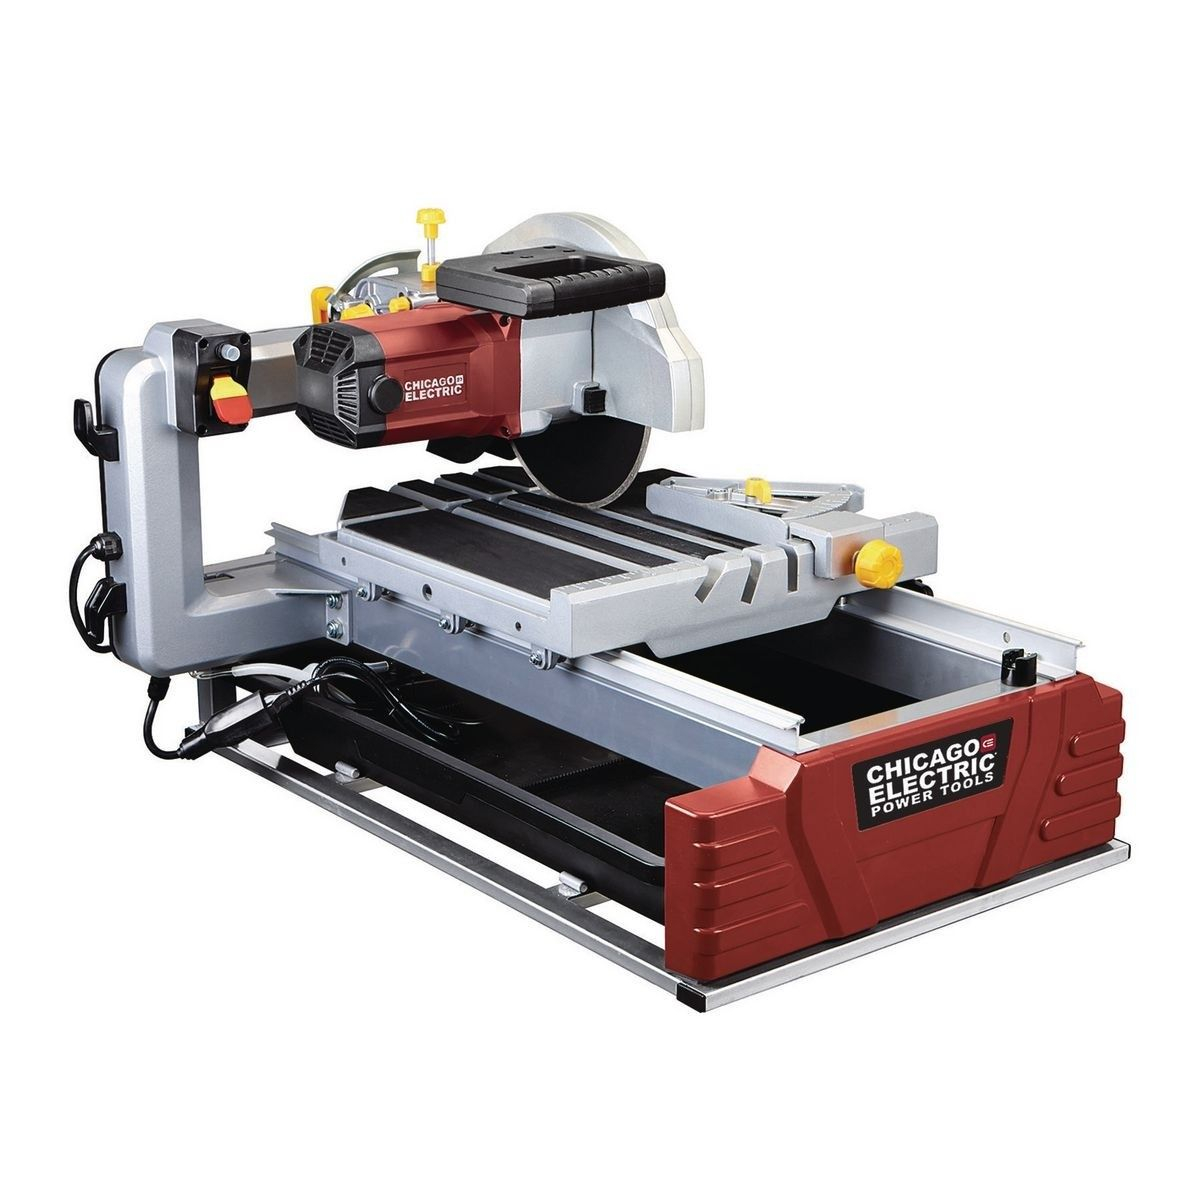 10 In 2 5 Hp Tile Brick Saw Brick Saw Tile Saw Table Saw